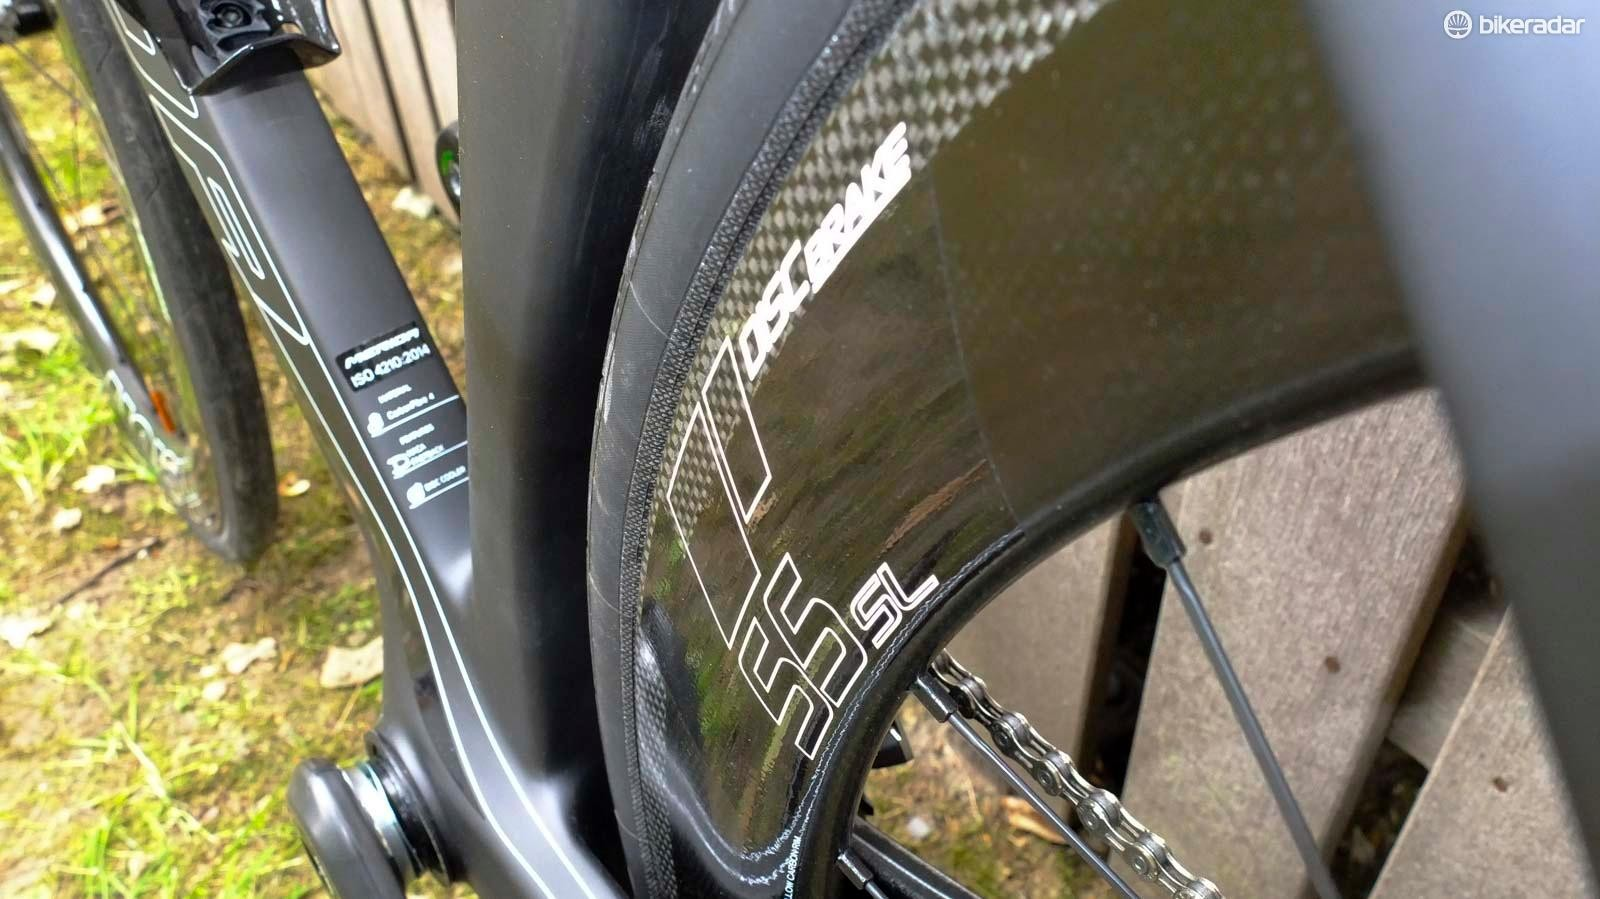 Vision Metron 55SL Disc wheels with 25mm Continental clinchers are standard spec on this bike